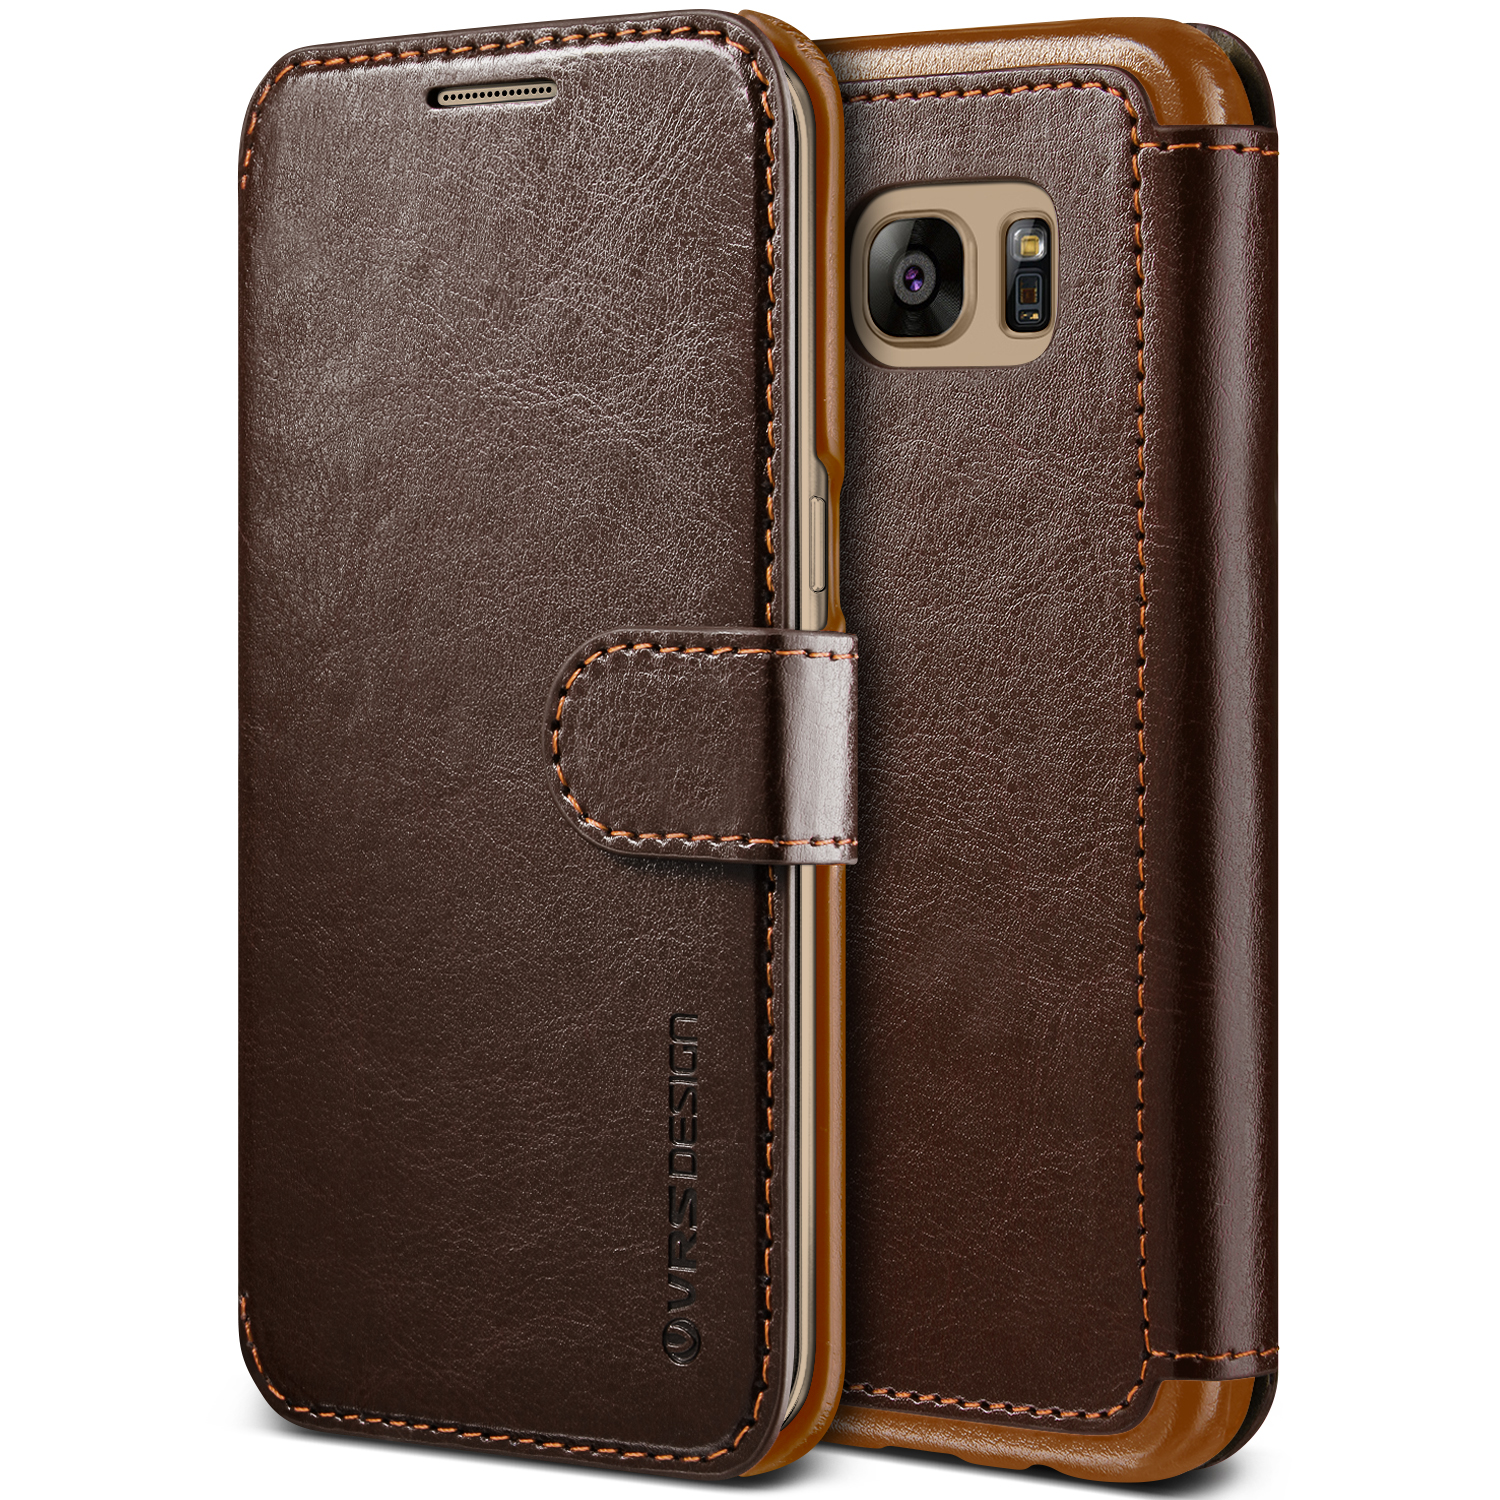 Samsung Galaxy S7 Edge Case Cover | Premium PU Leather Wallet with Card Slots | VRS Design Layered Dandy for Samsung Galaxy S7 Edge